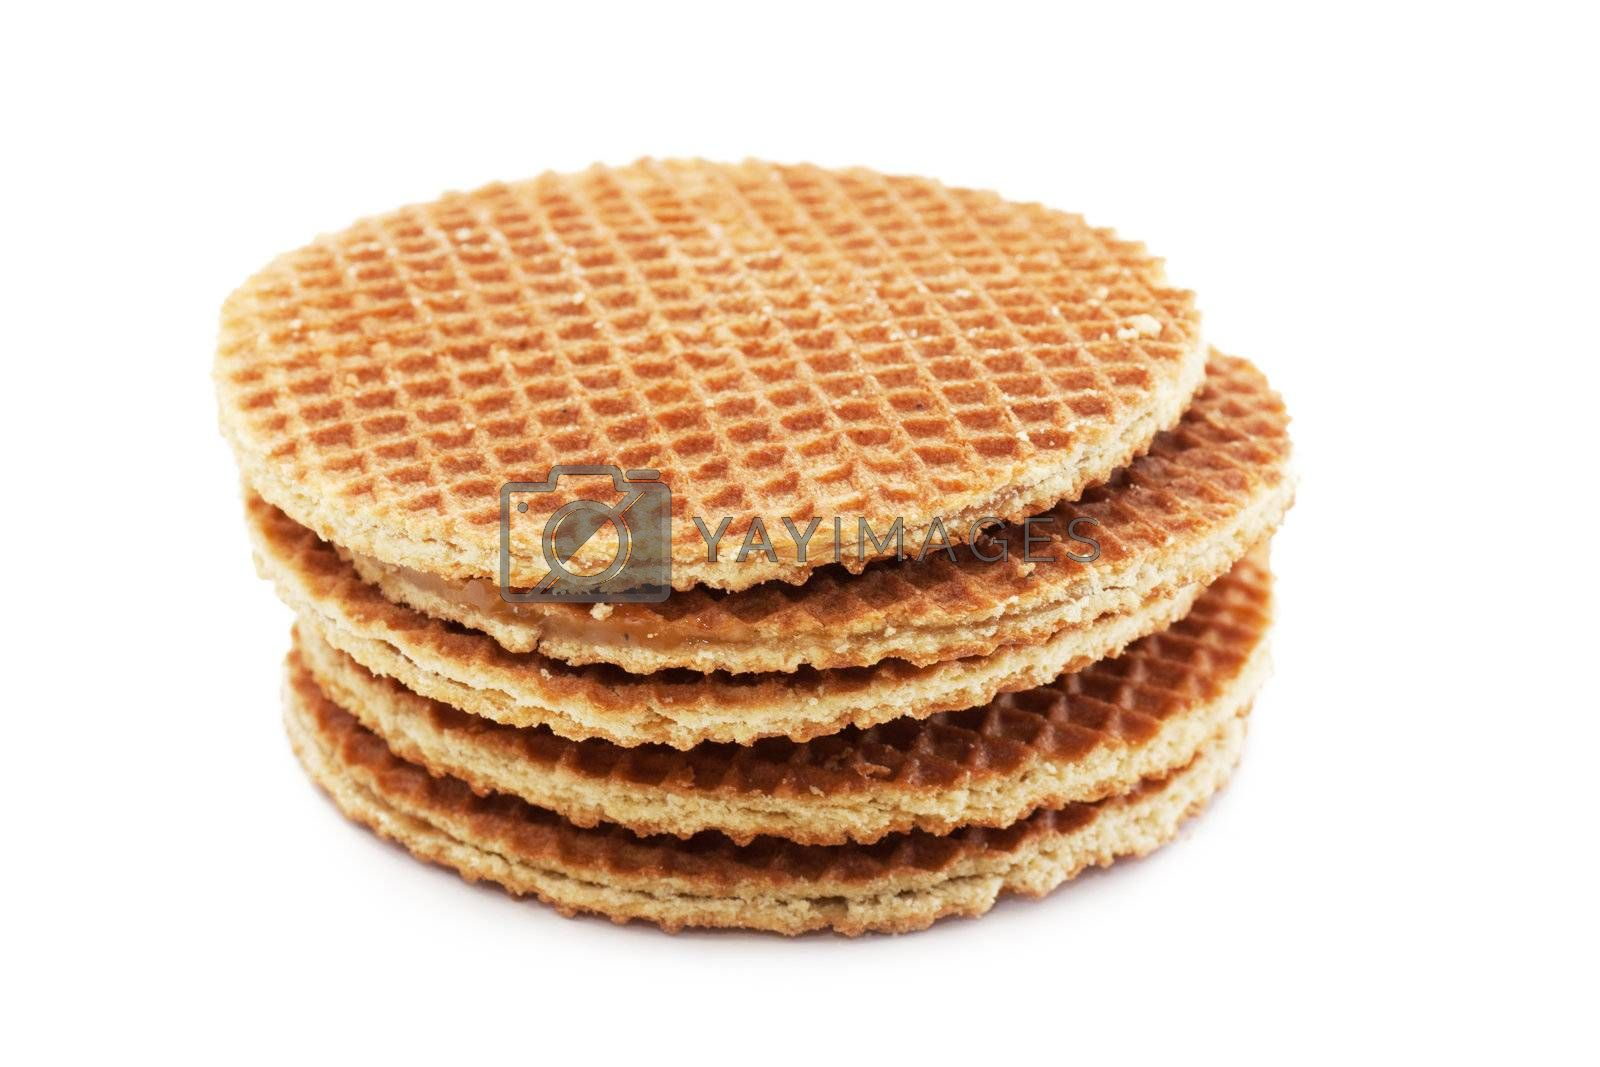 Royalty free image of Waffles by AGorohov